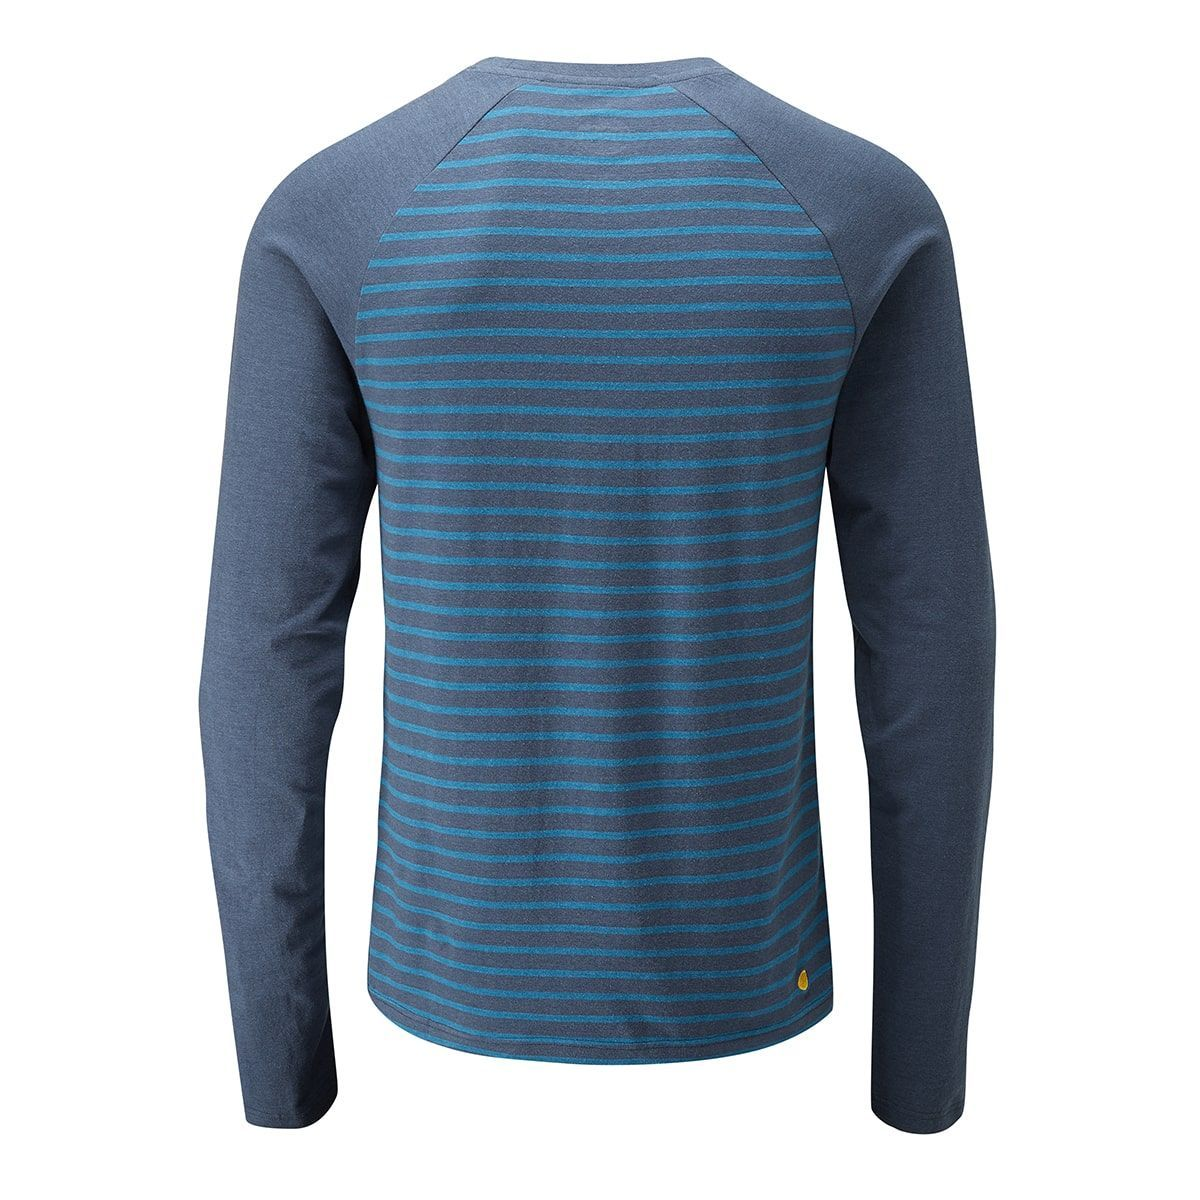 rear view of Moon Striped Bamboo Tech Long Sleeve T-Shirt in Dark blue with light blue pin stripes